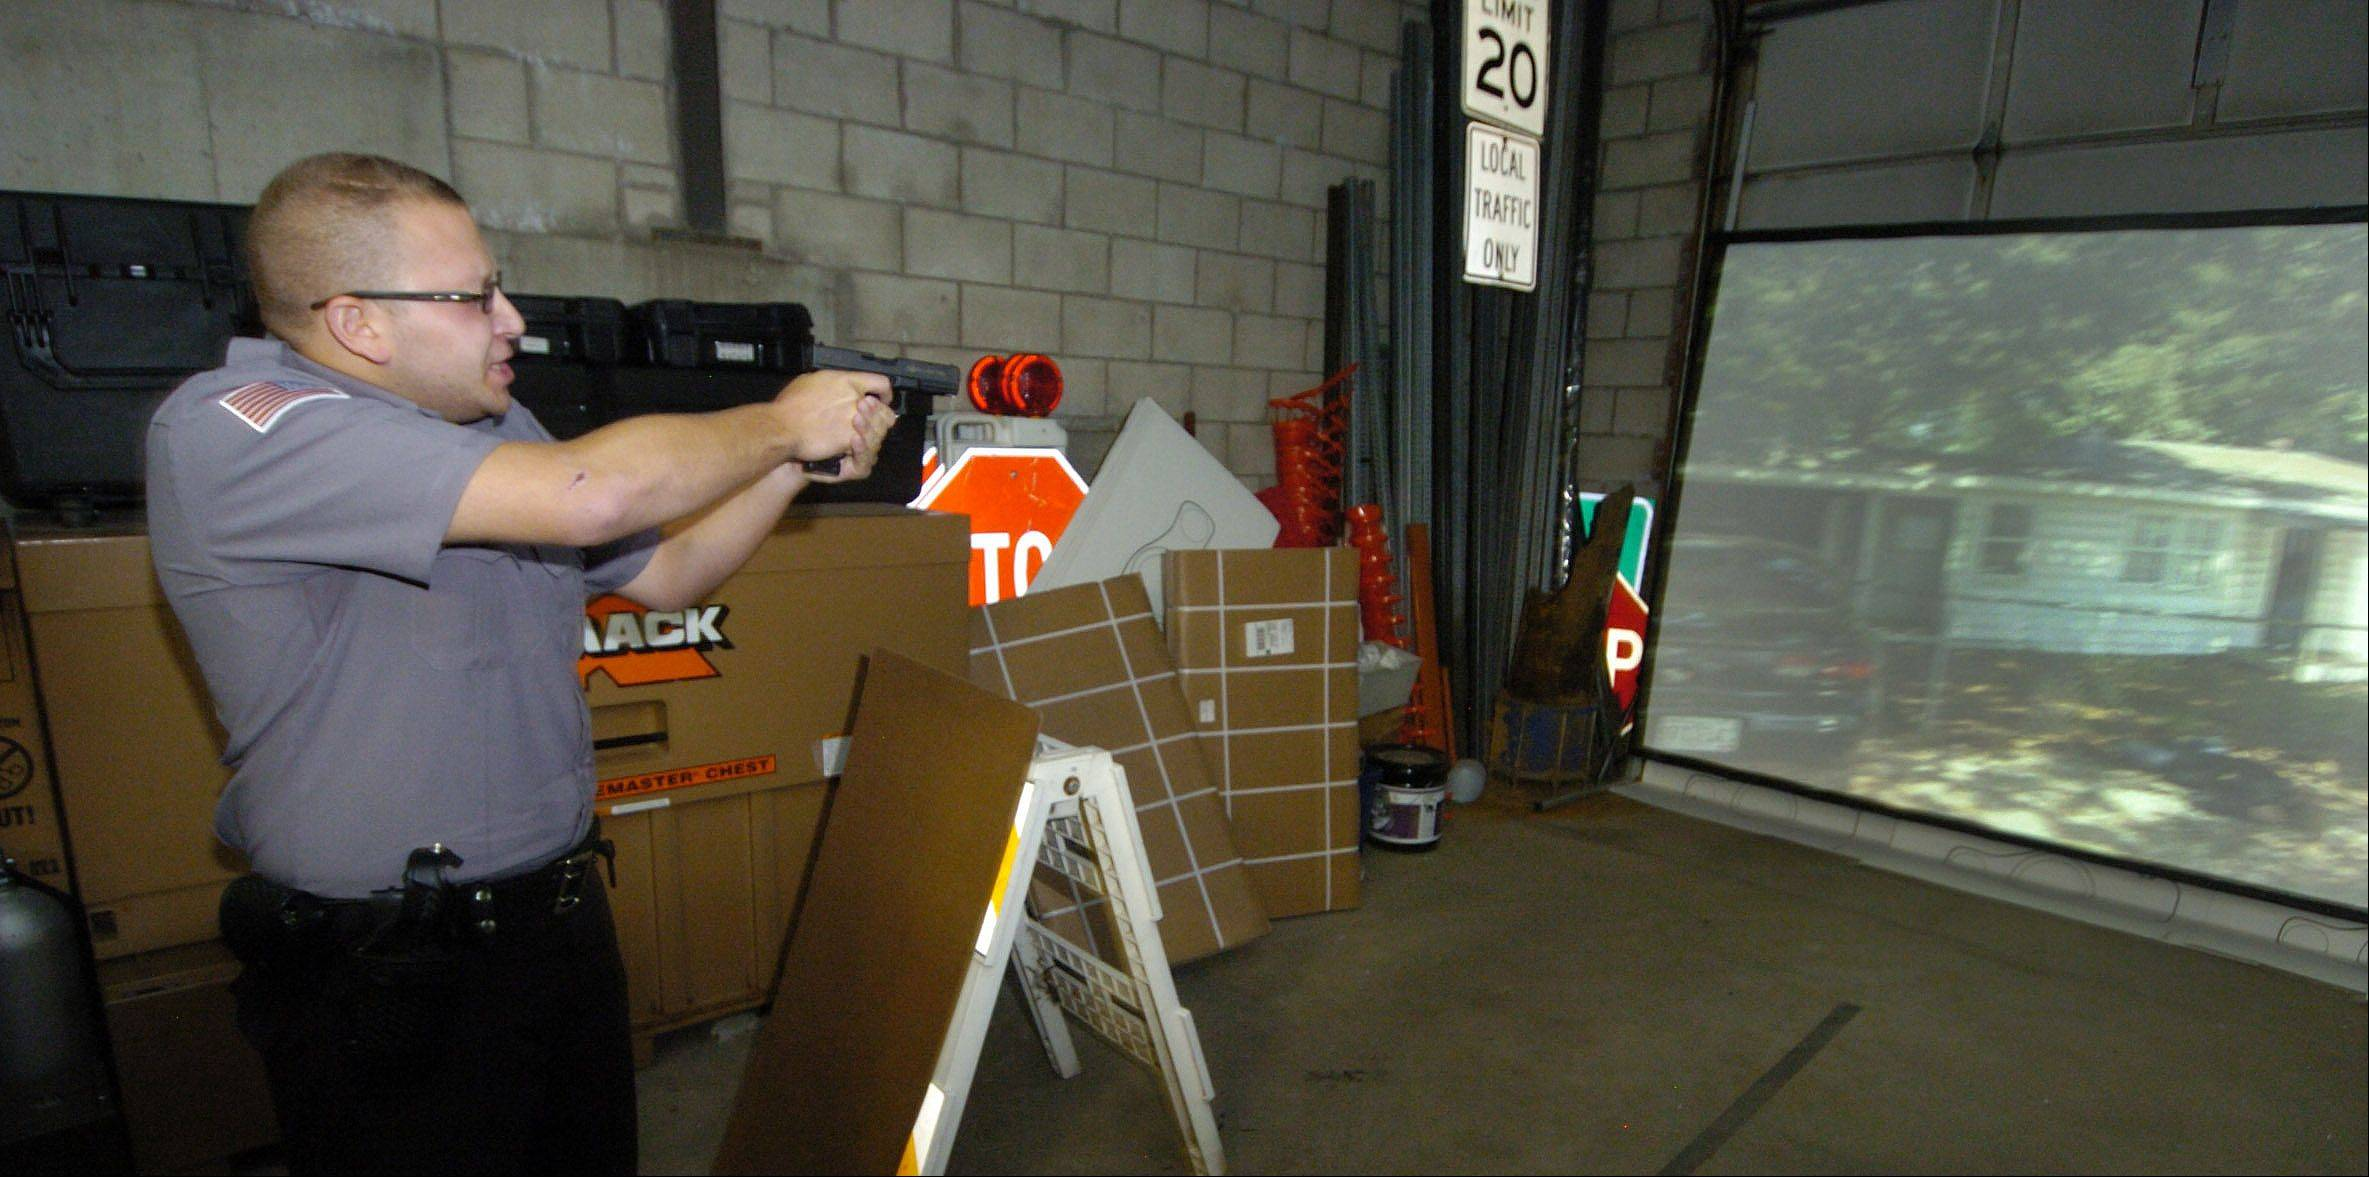 Hoffman Estates Police Explorer Phil Giacone aims his weapon while undergoing training with the Meggitt XVT firearms simulator at the South Barrington police station.